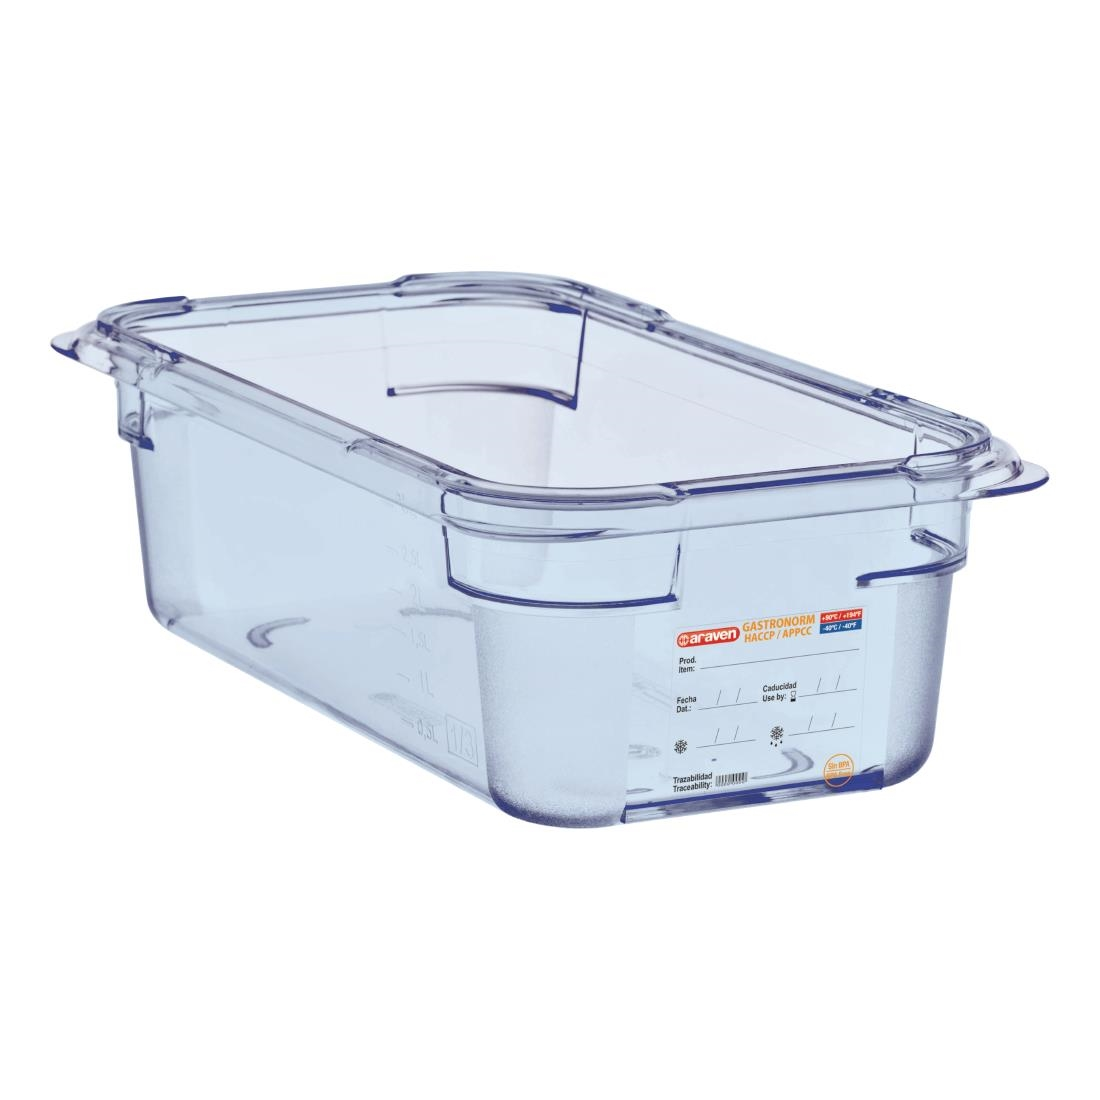 Image of Araven ABS Food Storage Container Blue GN 1/3 100mm